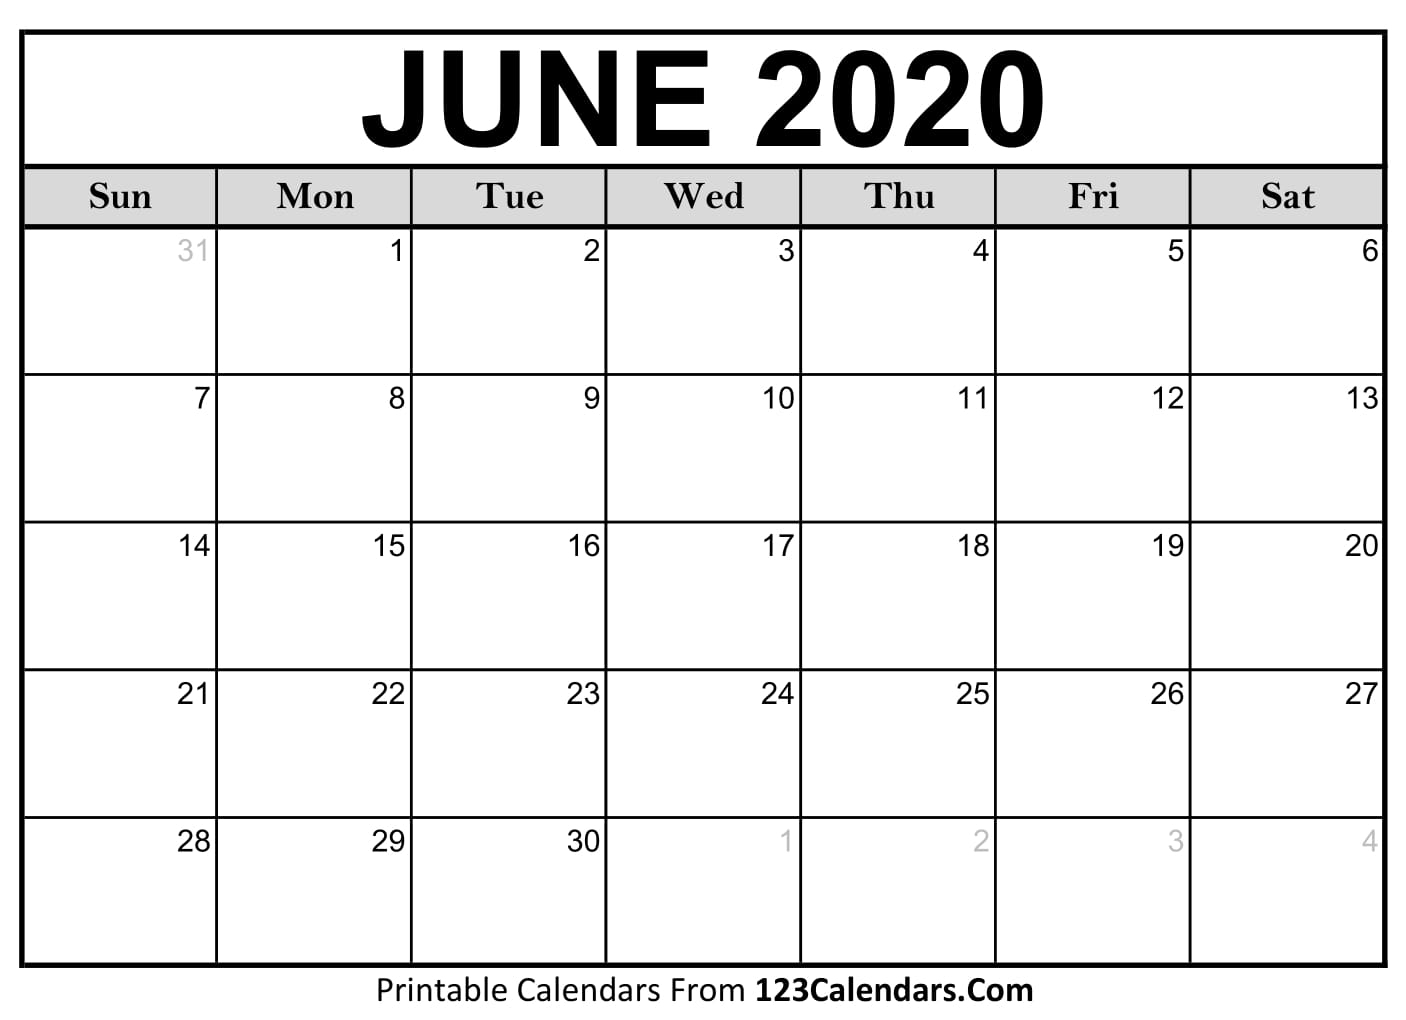 June 2020 Printable Calendar | 123Calendars intended for Special Days In June 2020